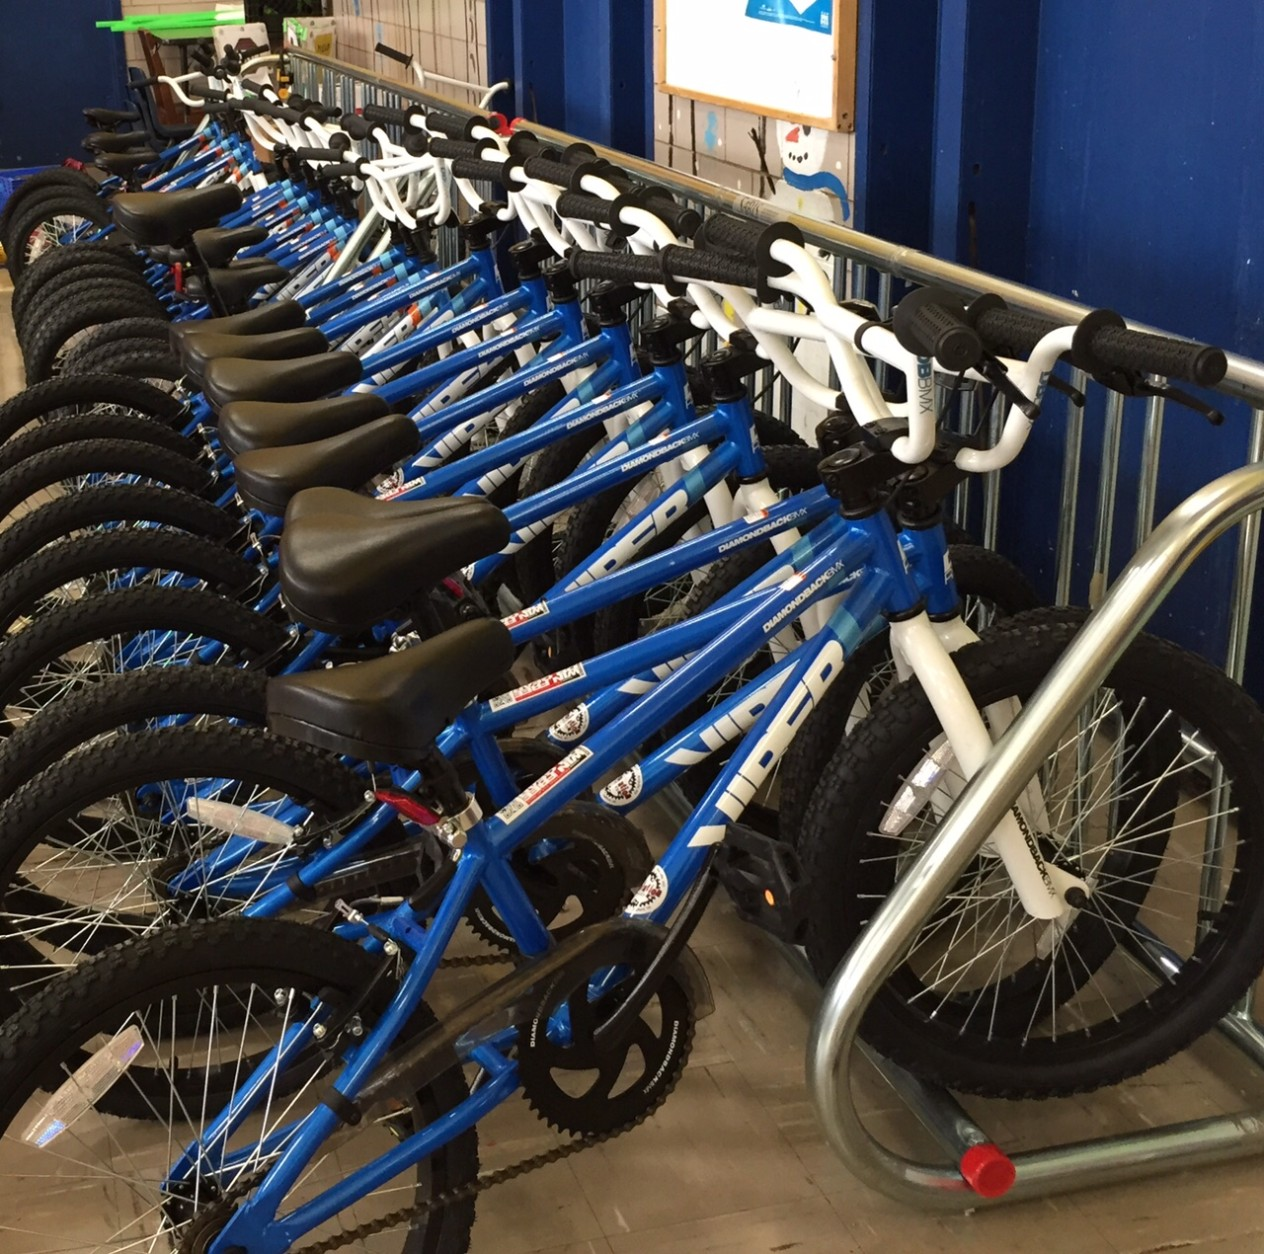 These bikes await their young riders. (WTOP/Kate Ryan)